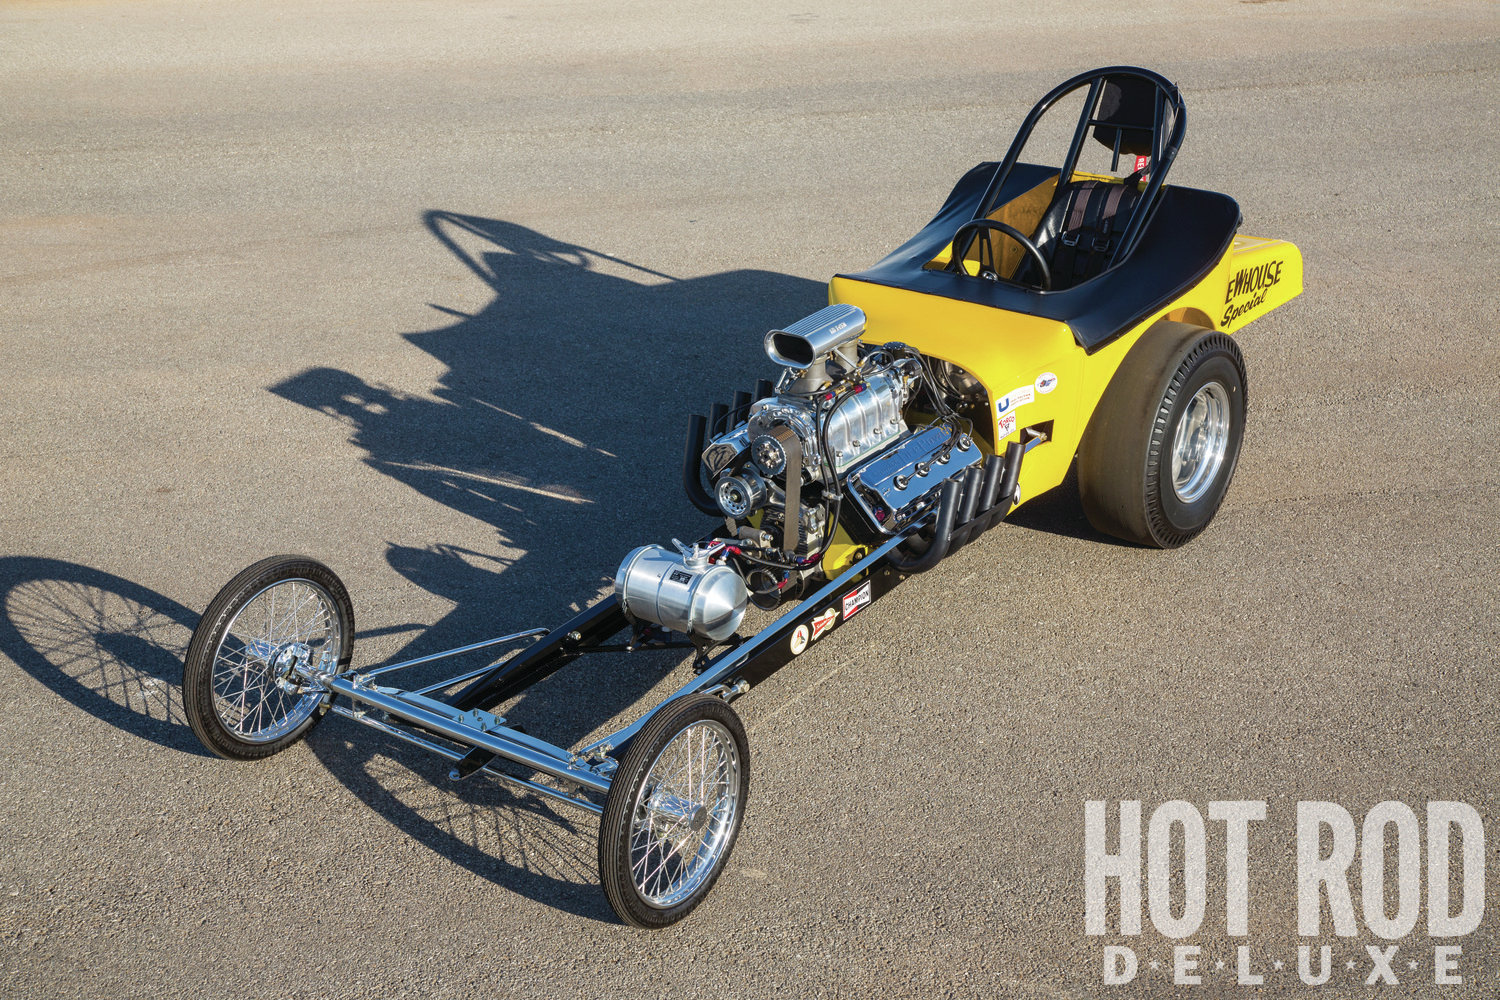 More altered than dragster, the cloned T duplicates the original's unboxed frame, square steering link, front leaf spring, 5-foot-wide chrome-moly axle with early Ford spindles, round steering wheel, and tonneau cover.